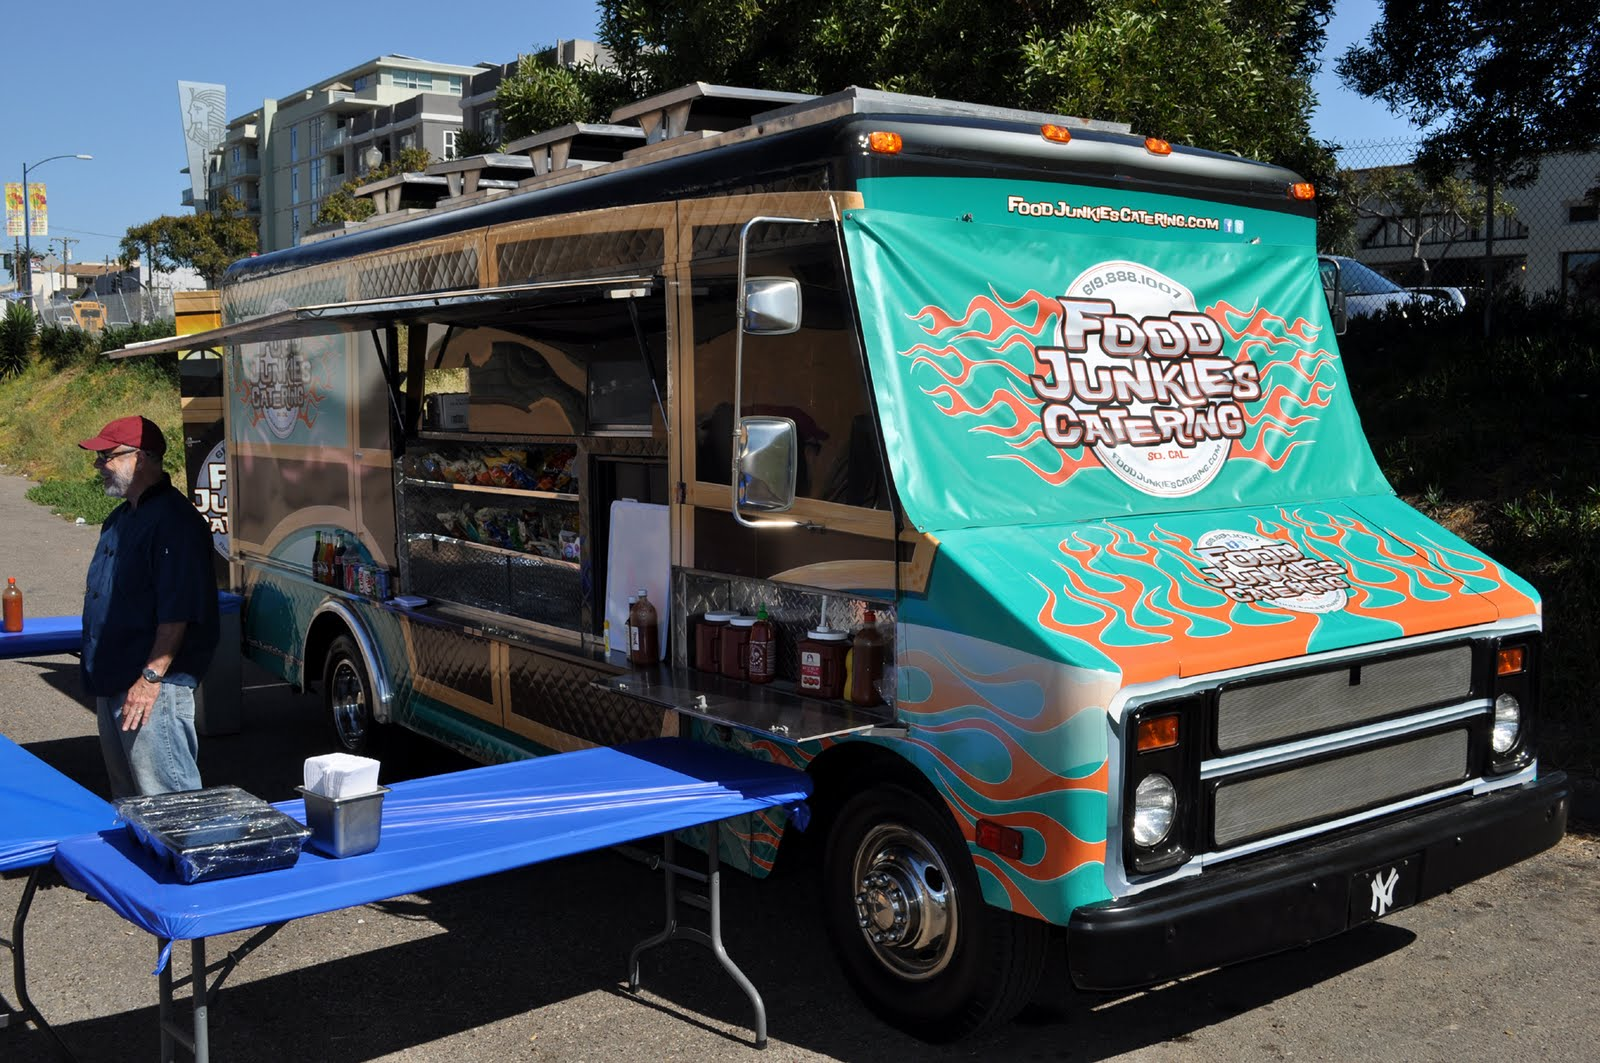 The Gourmet Food Trucks Were Gathered To Add Dining Out For LifeR San Diego